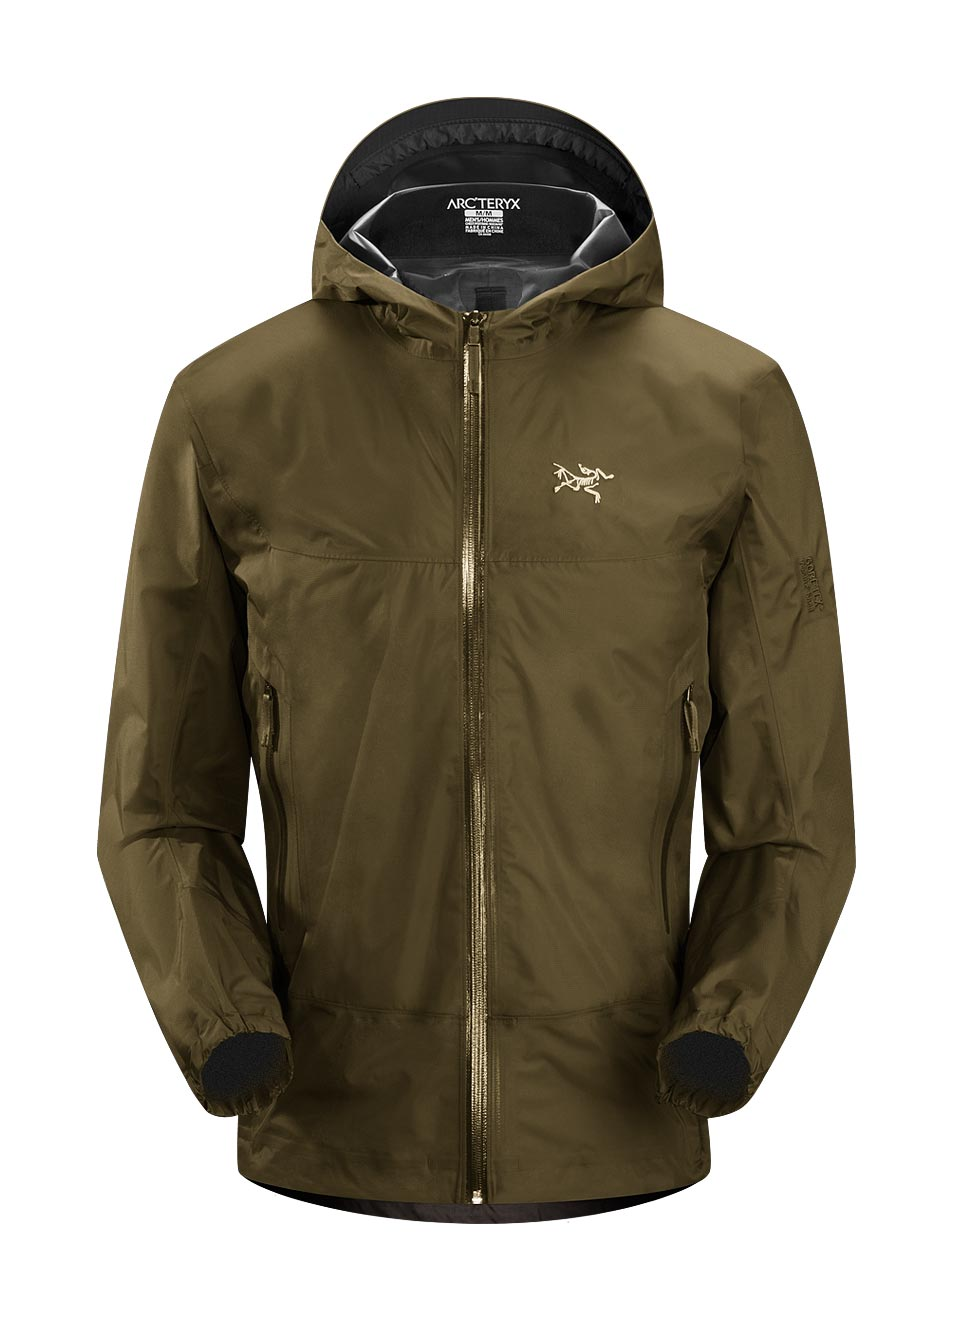 Arcteryx Peat Consular Jacket - New